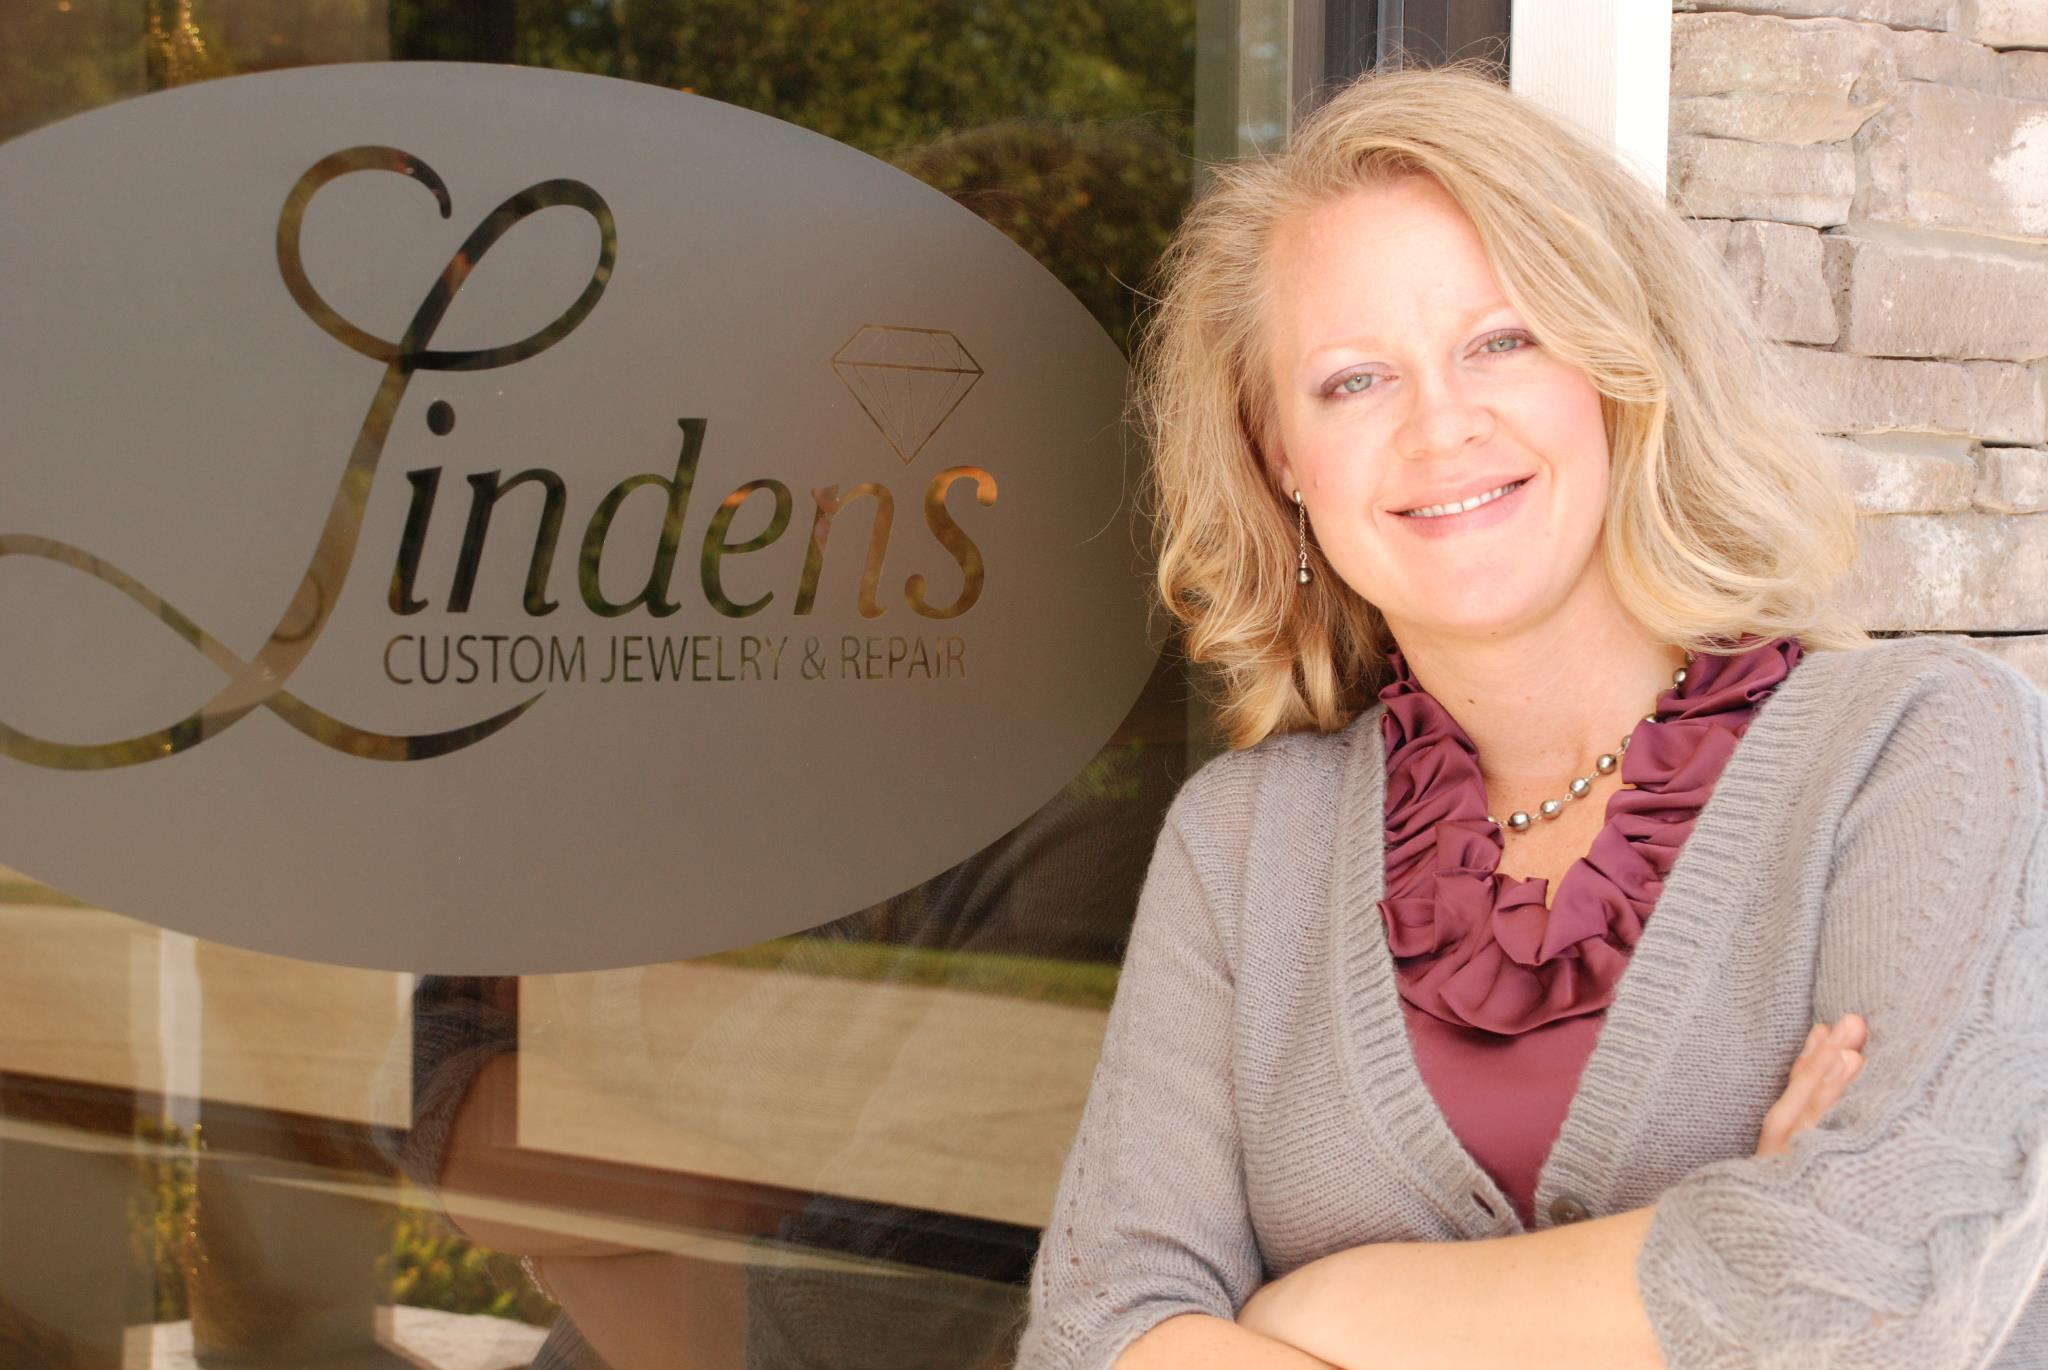 Linden's Custom jewelry & Diamonds - Ashley Linden - Business Front